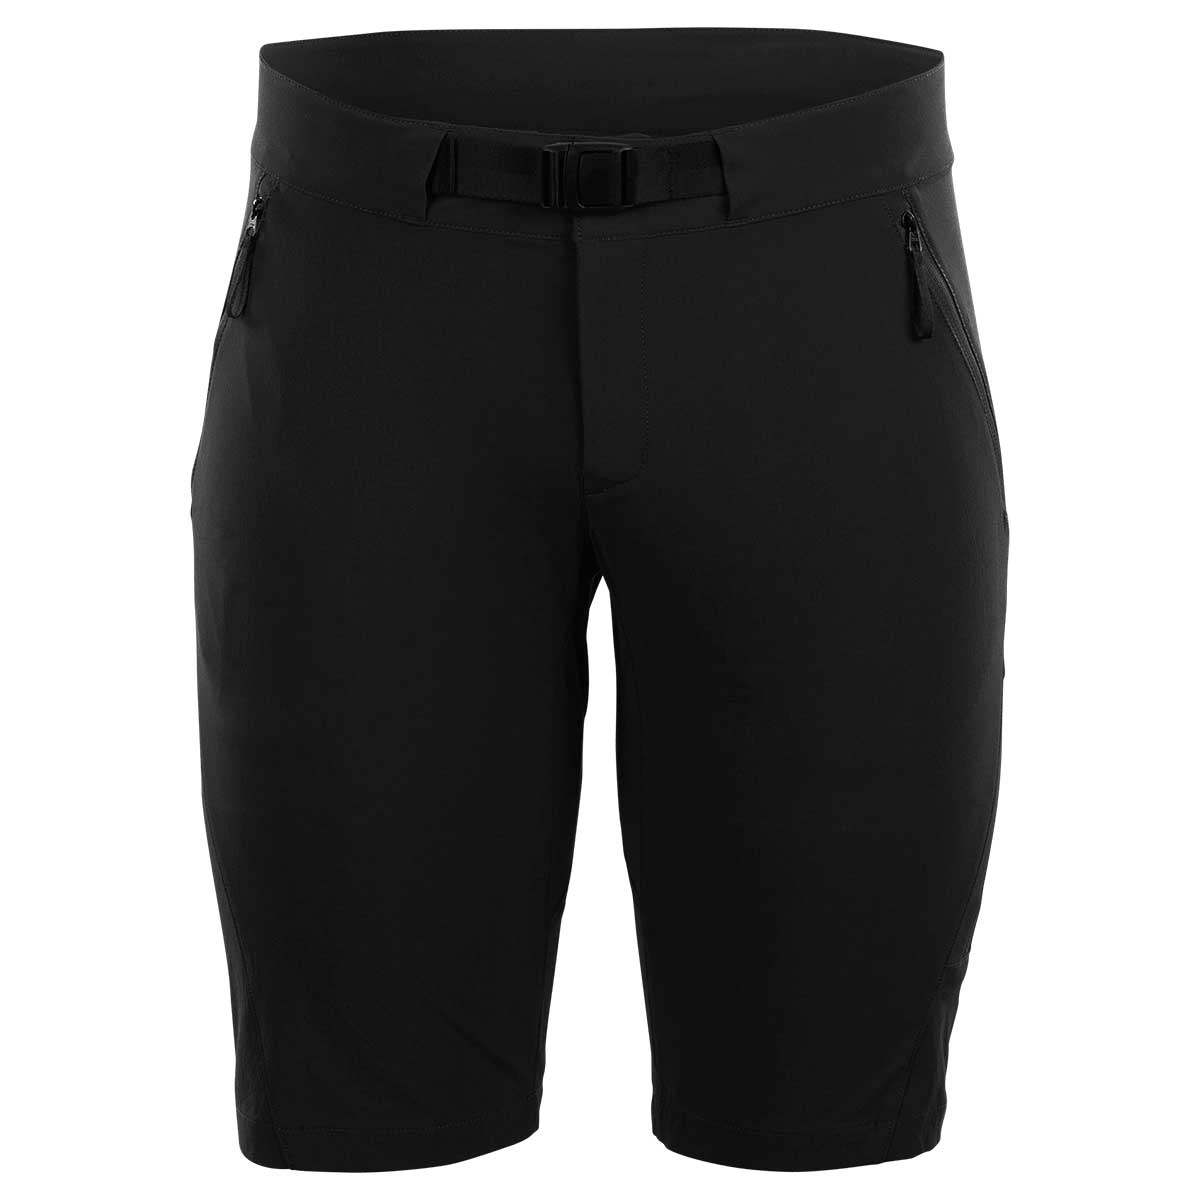 Sugoi men's Off Grid Short in Black